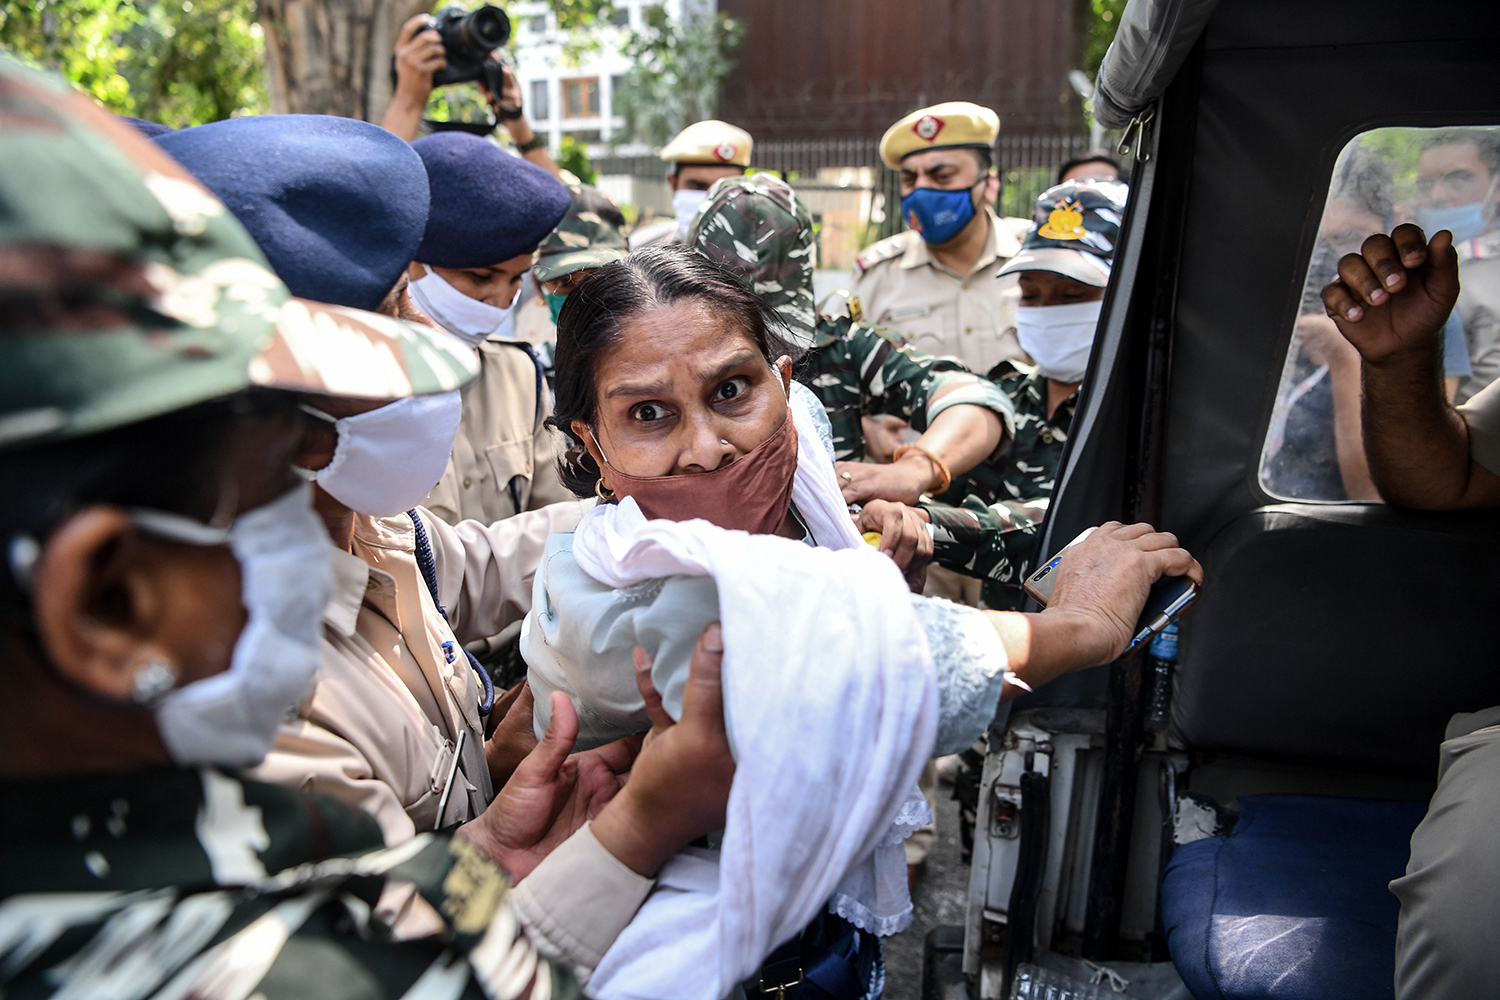 Security personnel detain a protester during a demonstration outside the Uttar Pradesh Bhawan in New Delhi on Sept. 30, a day after a 19-year-old woman who was allegedly gang-raped died from her injuries. Indian police were accused of forcibly cremating the victim's body. SAJJAD HUSSAIN/AFP via Getty Images